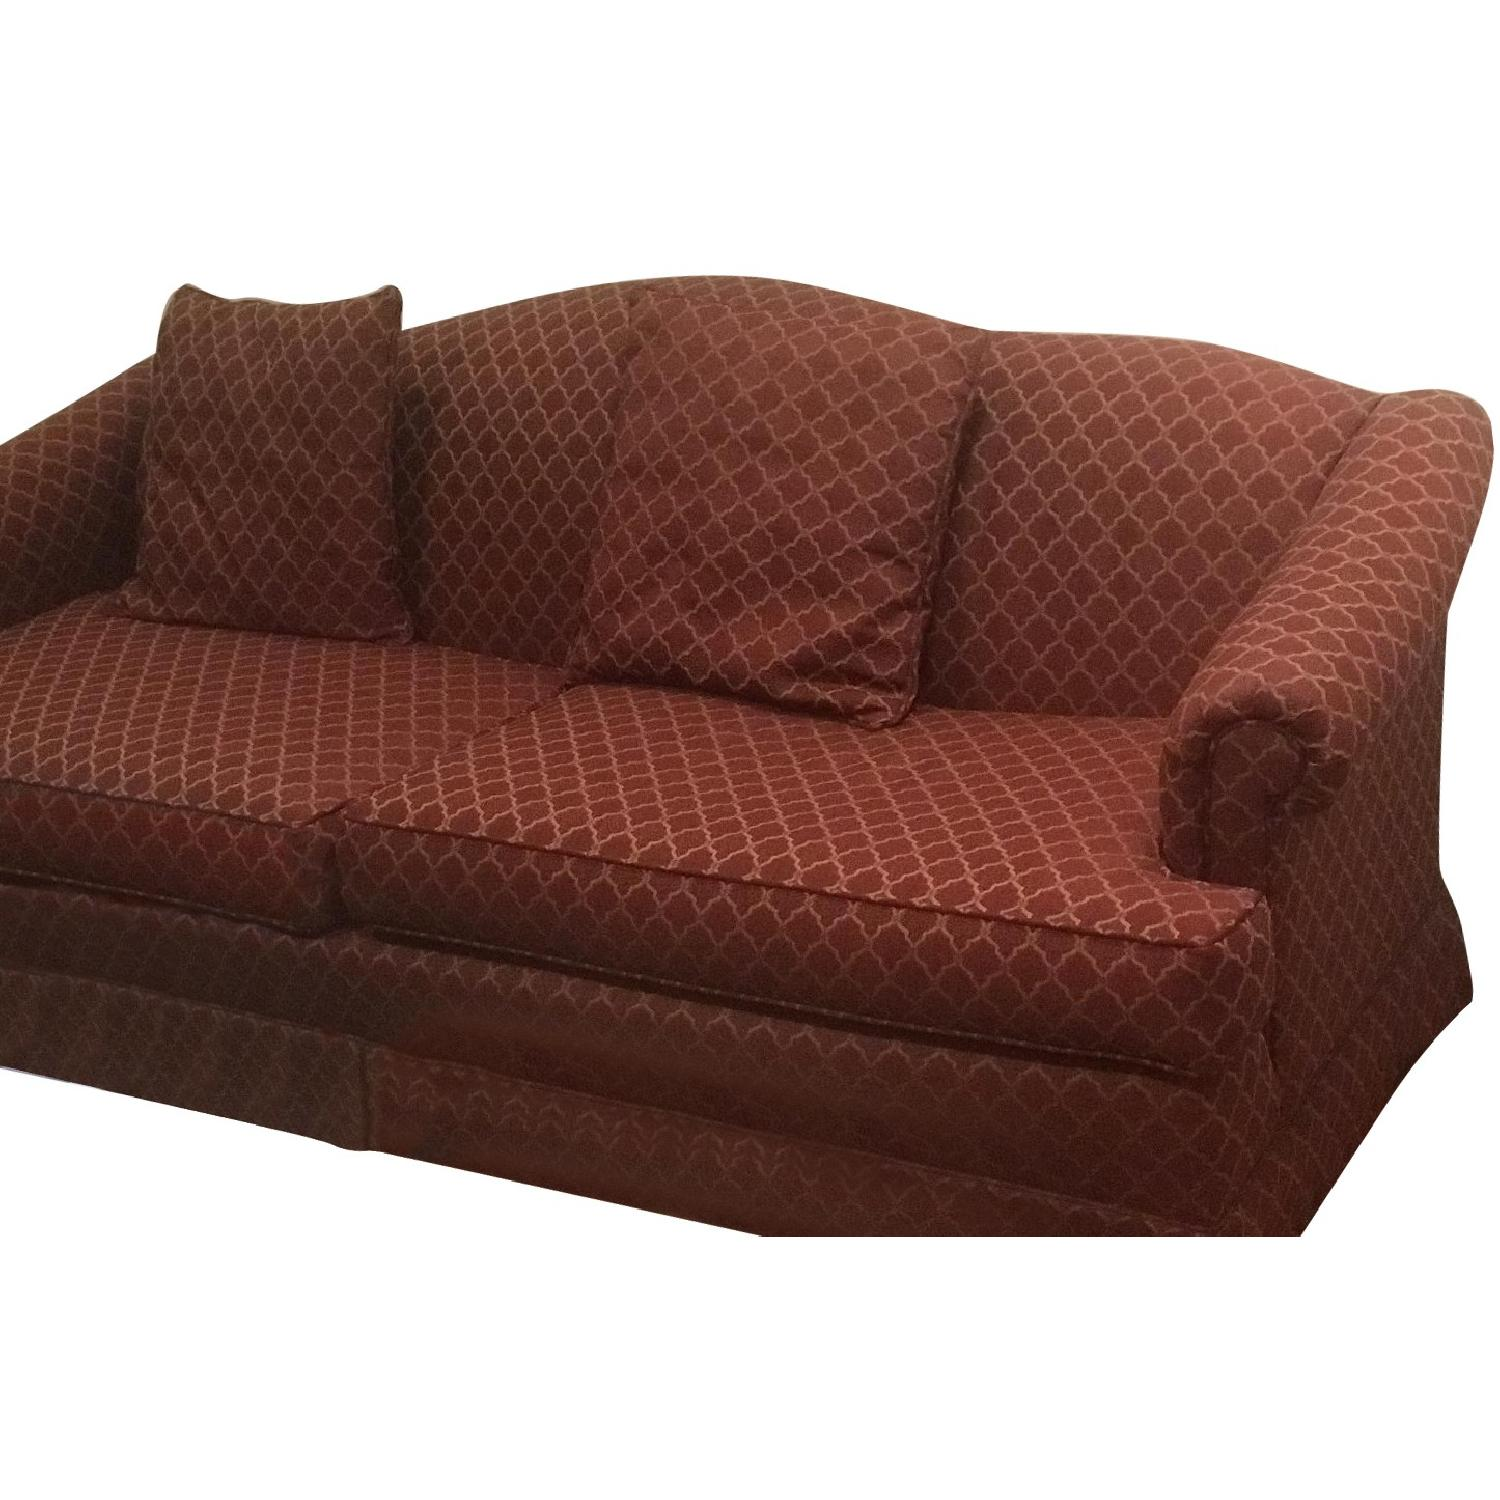 Vintage Style Patterned Red Sofa